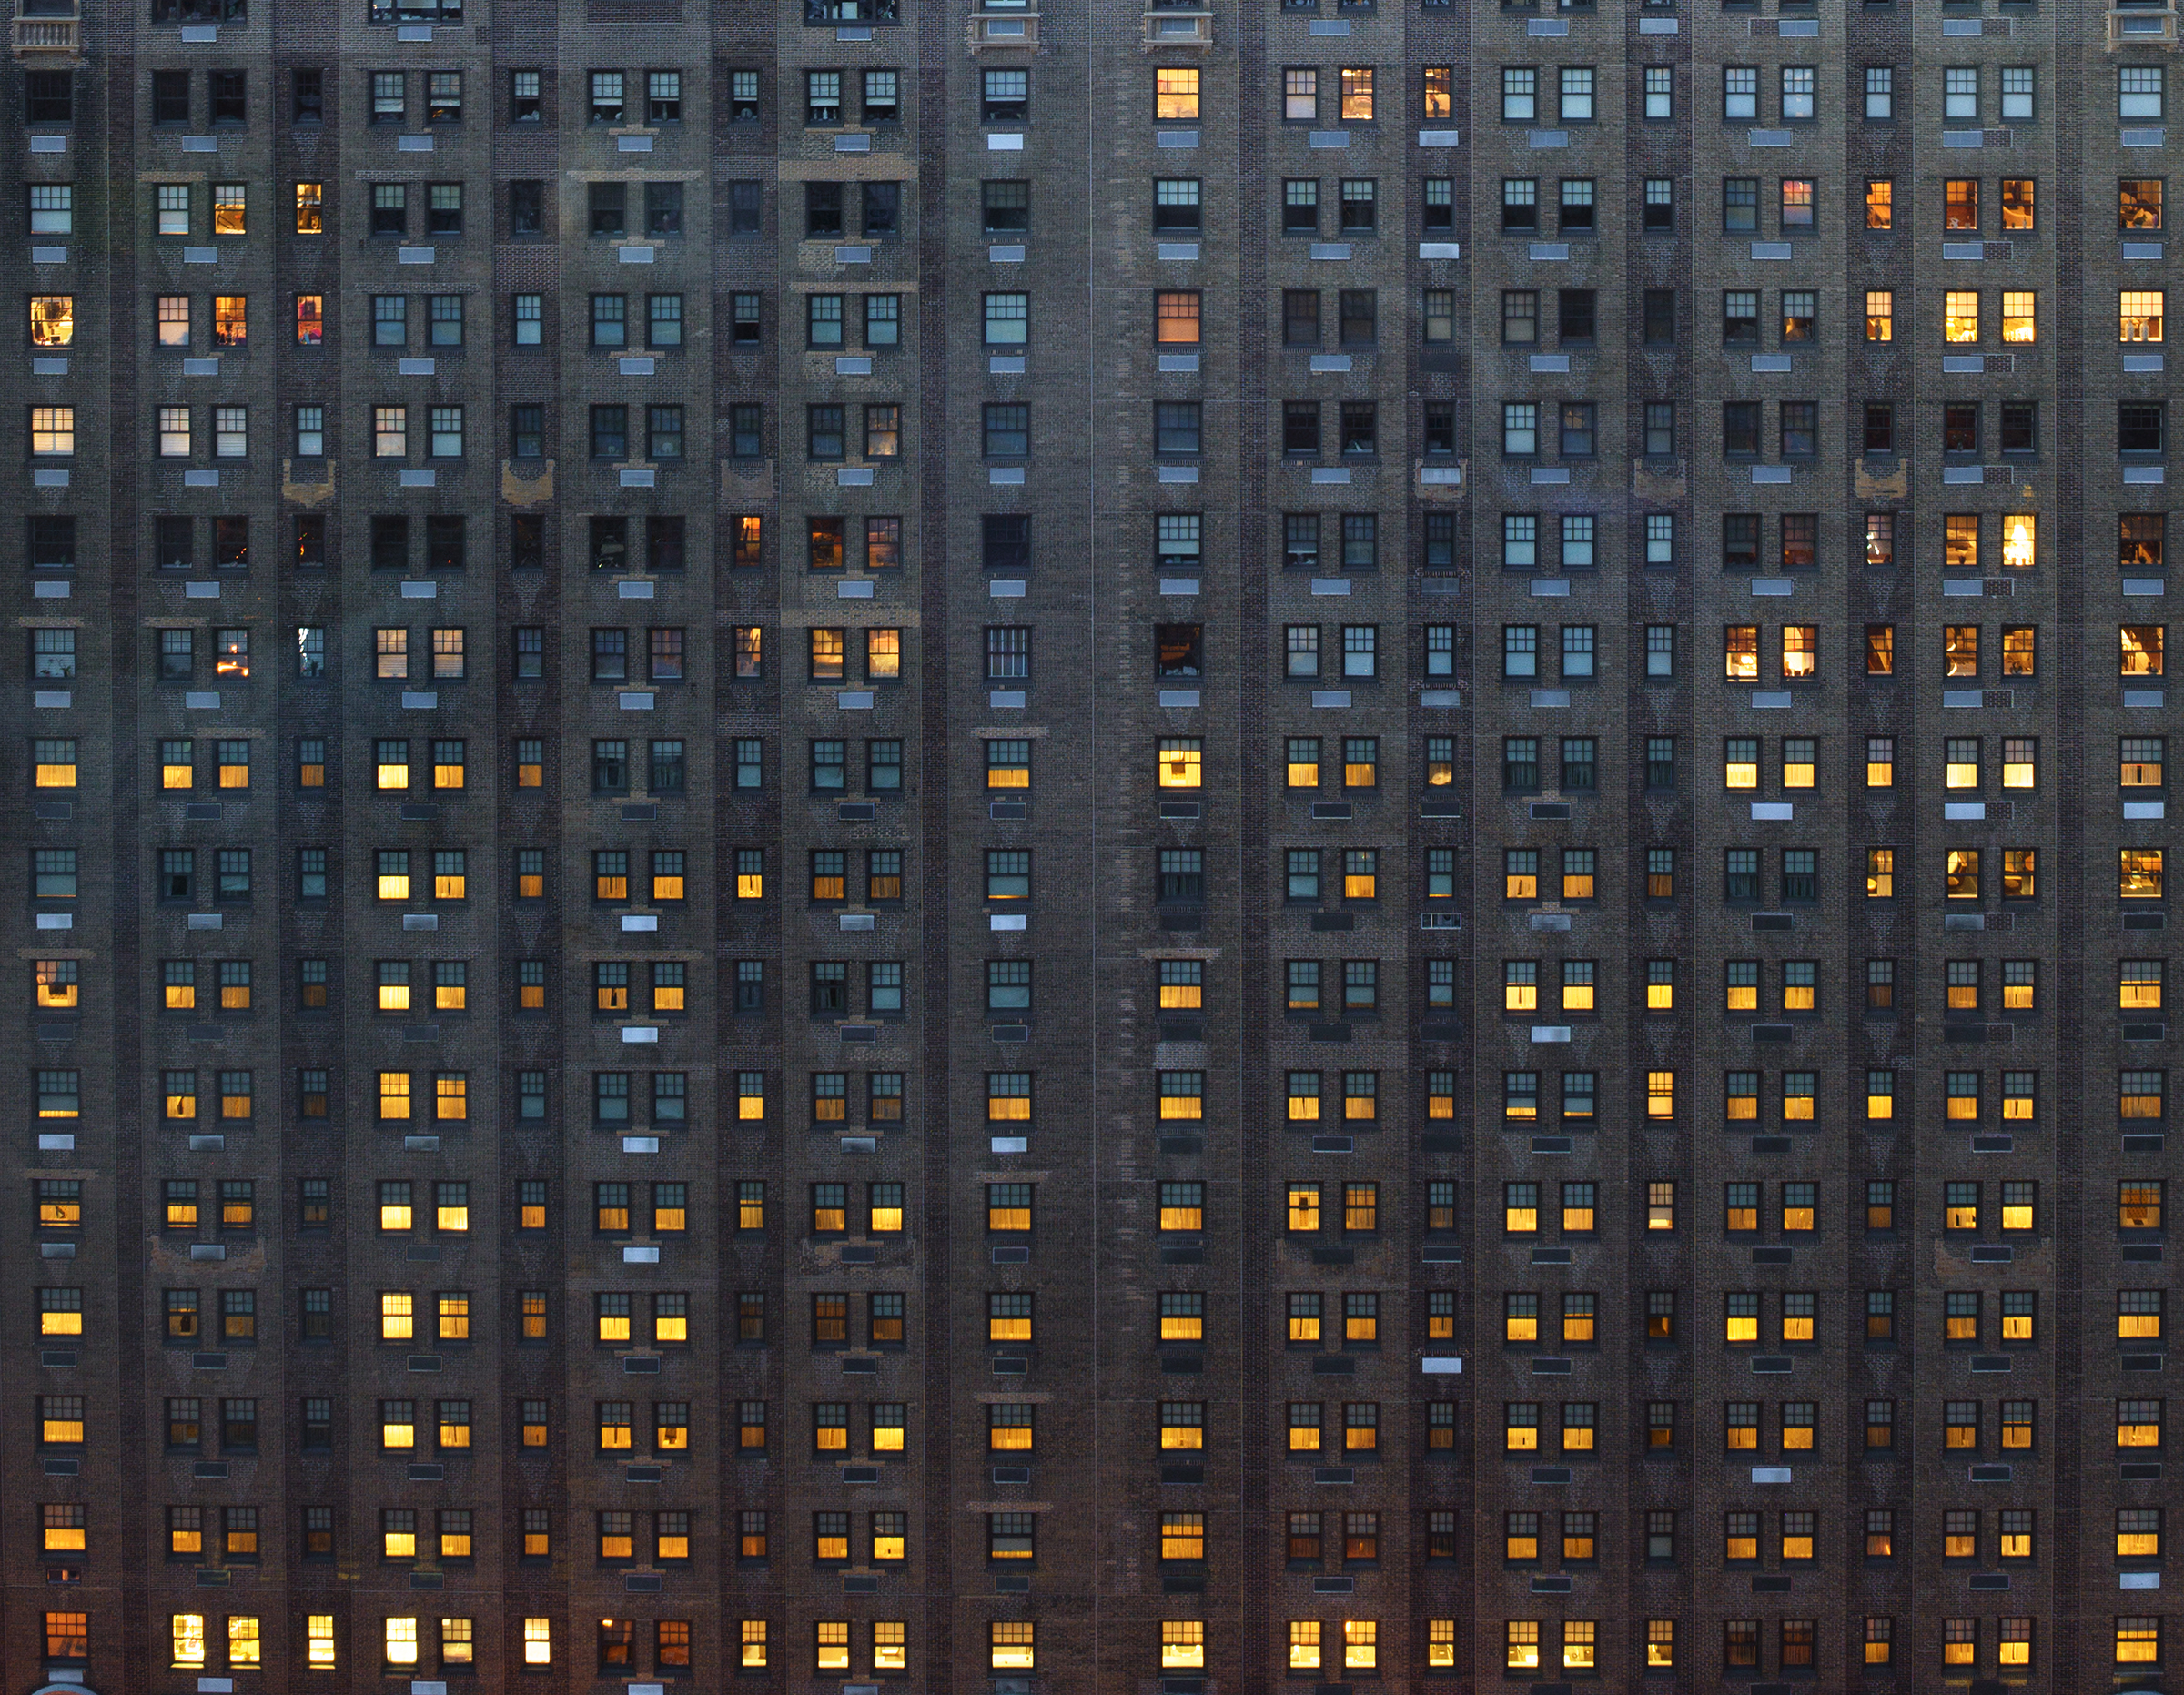 Crop from an image I took last night during a night photo shoot in Philly. It appears to me that the people on the lower floors arrive home first.